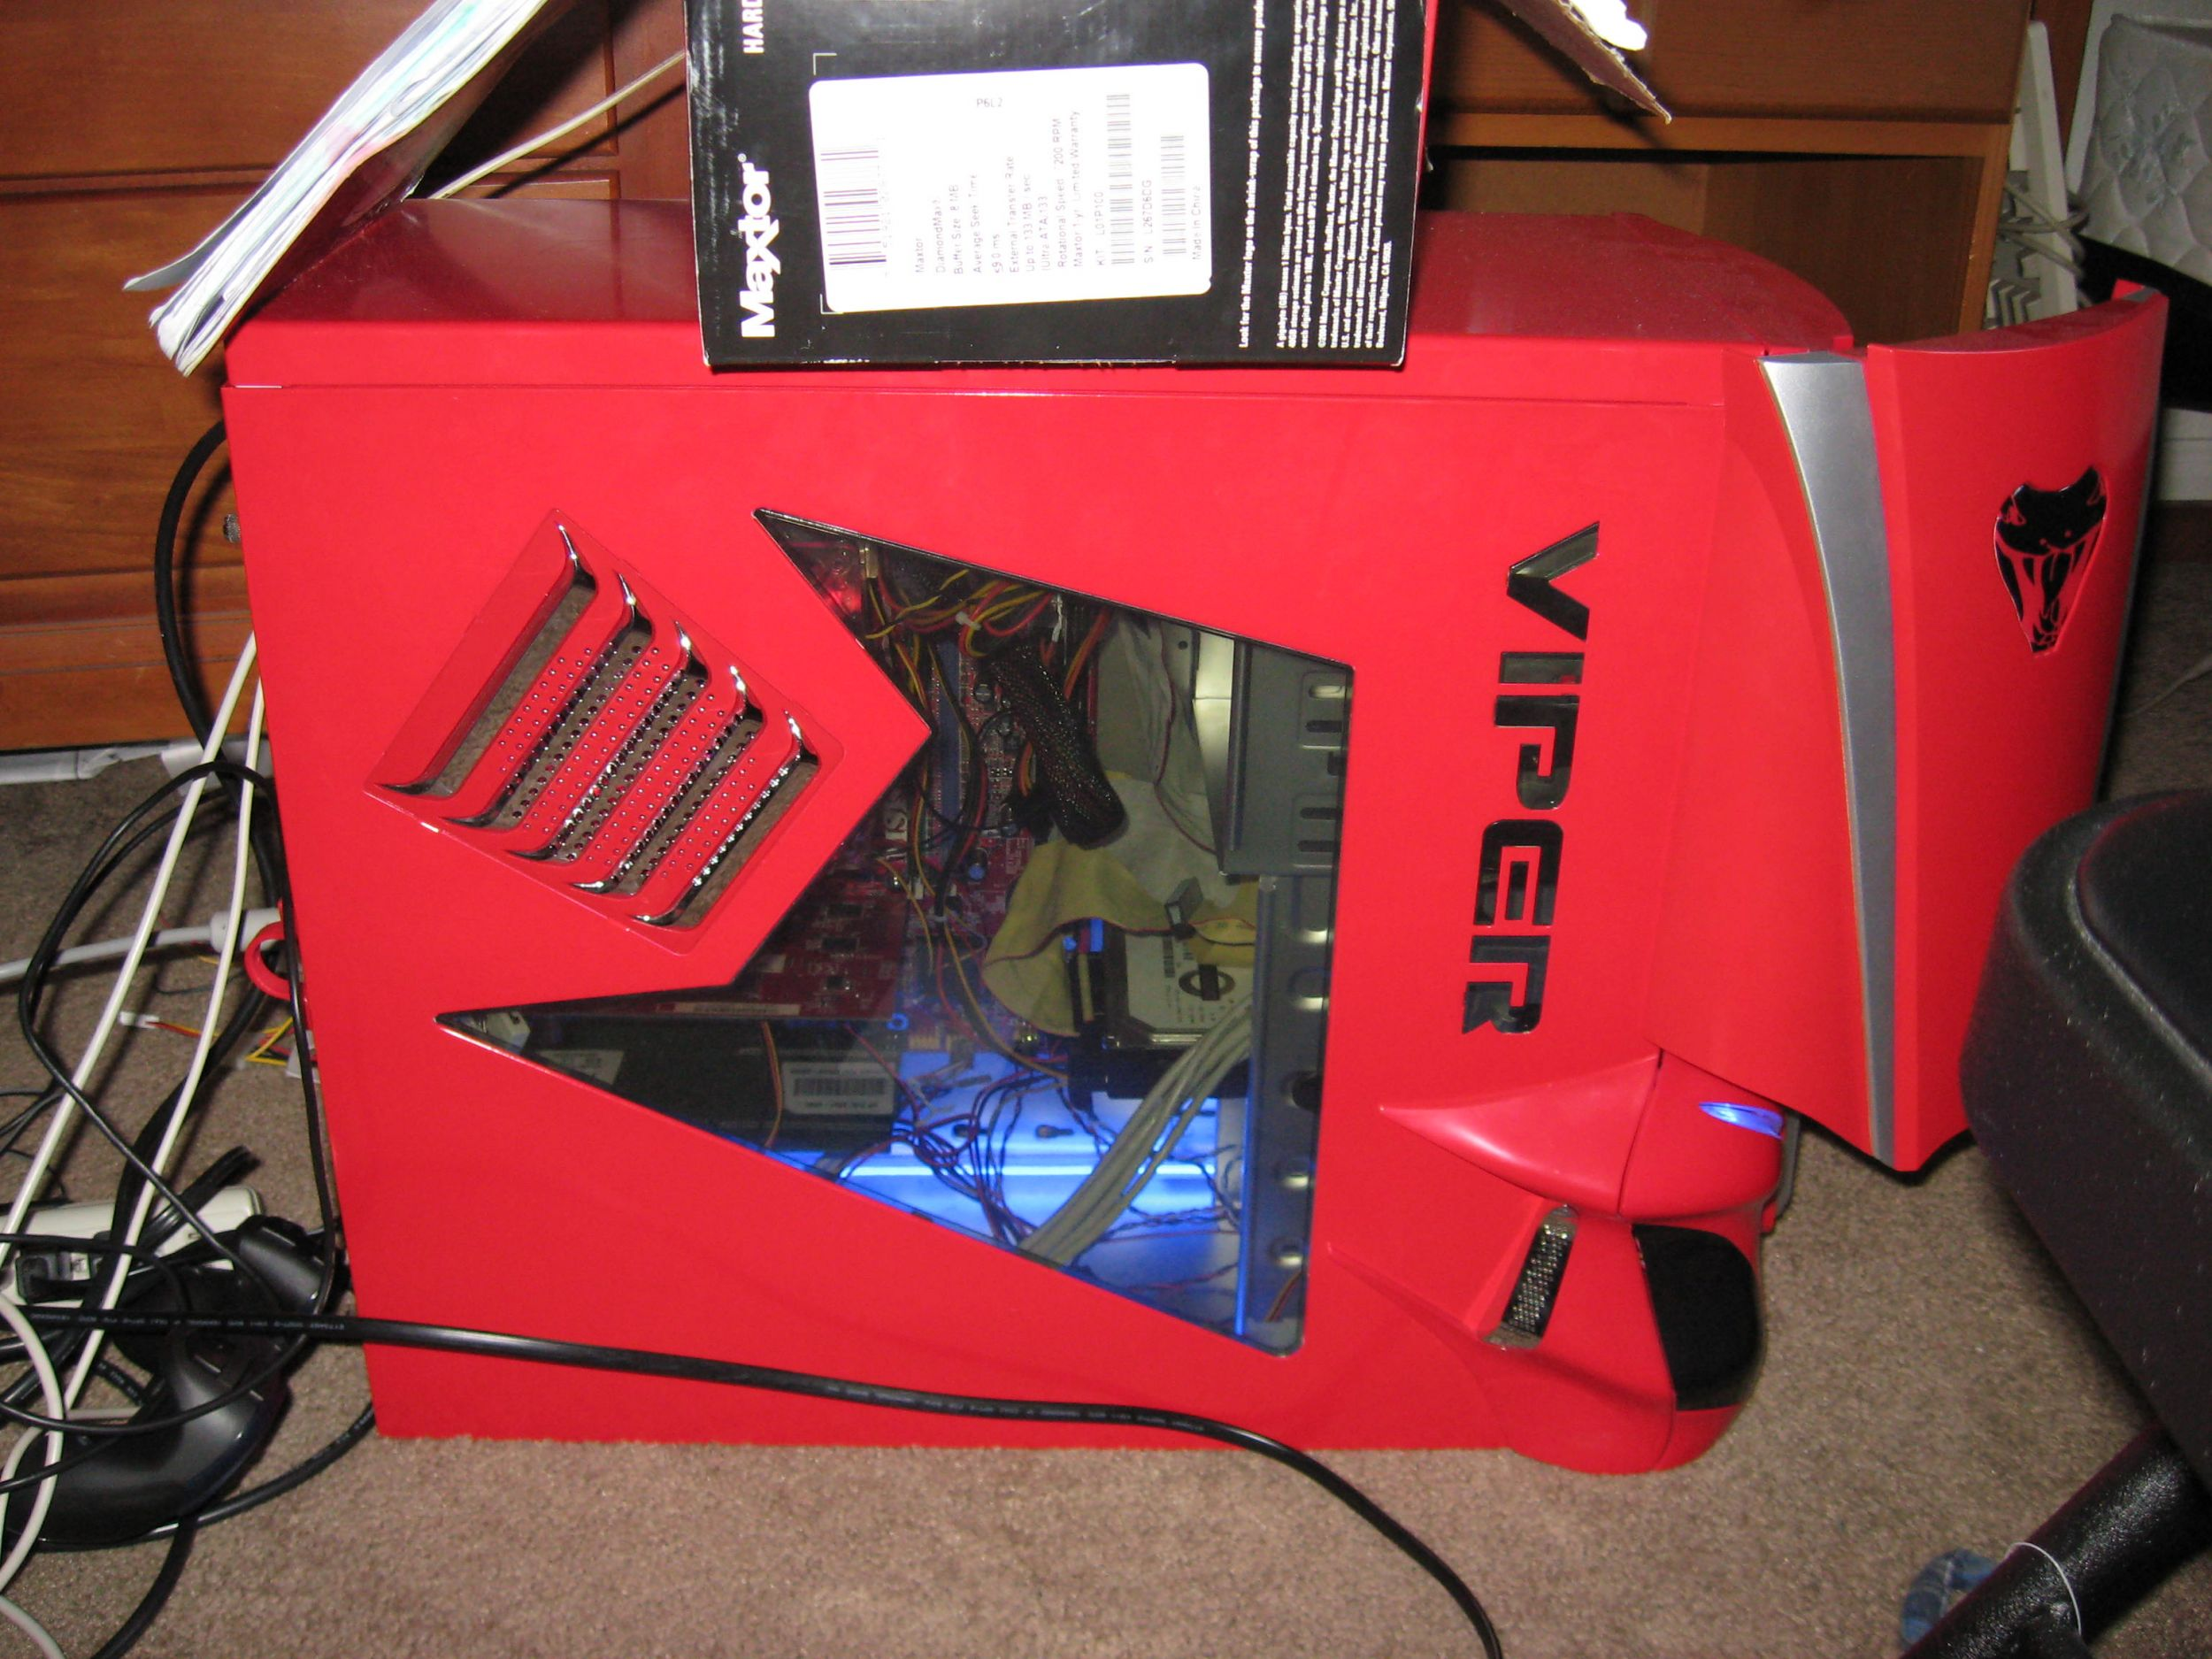 Closed computer case with cold cathodes on